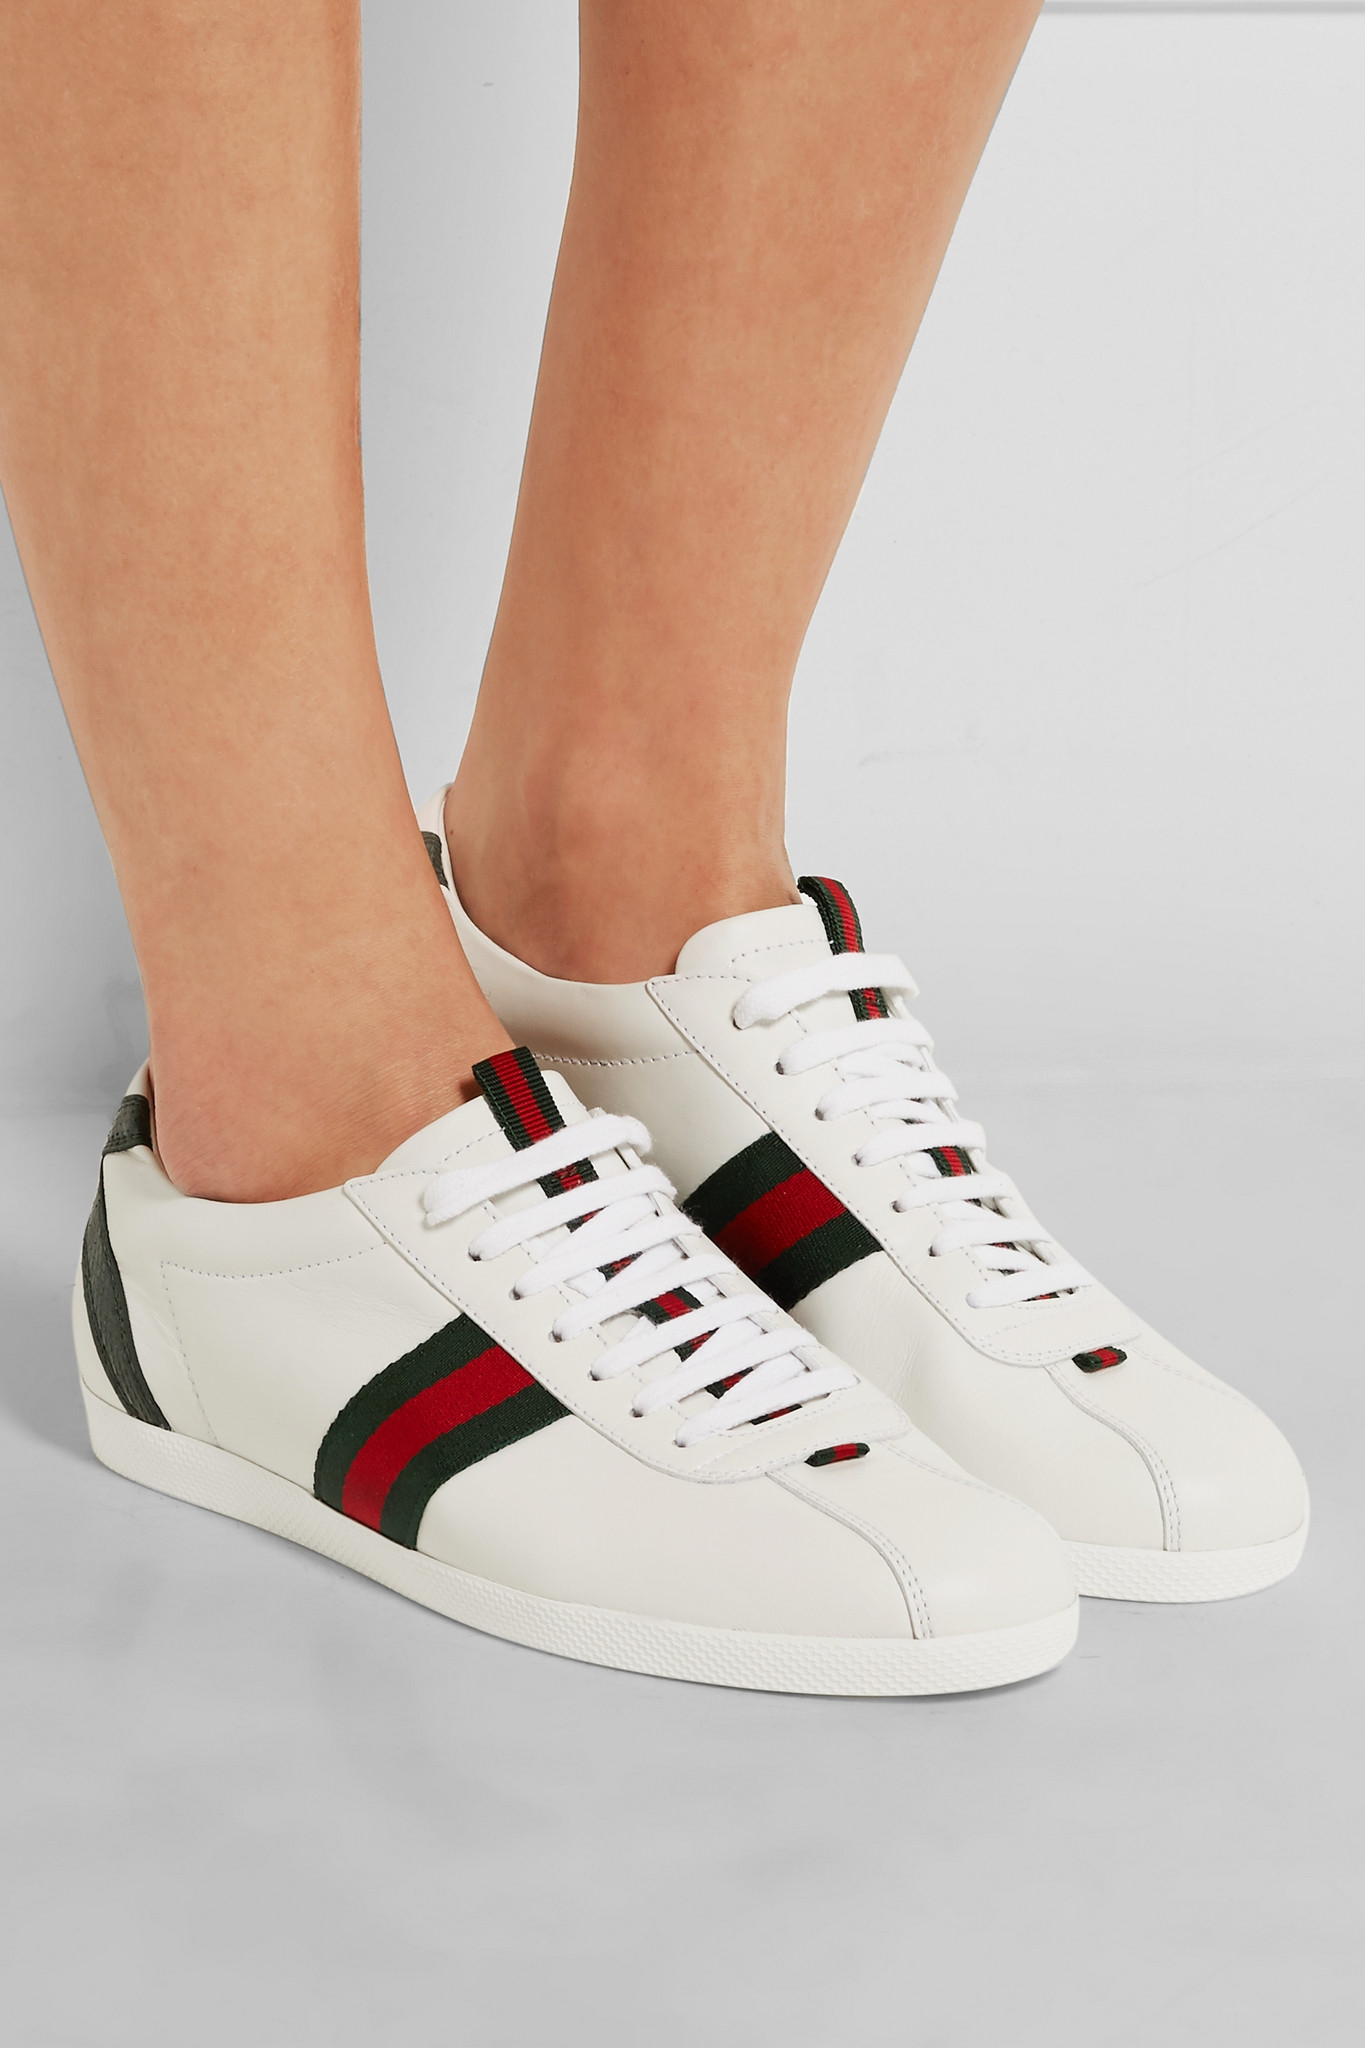 06aba8706b2 Lyst - Gucci New Ace Watersnake-trimmed Leather Sneakers in White